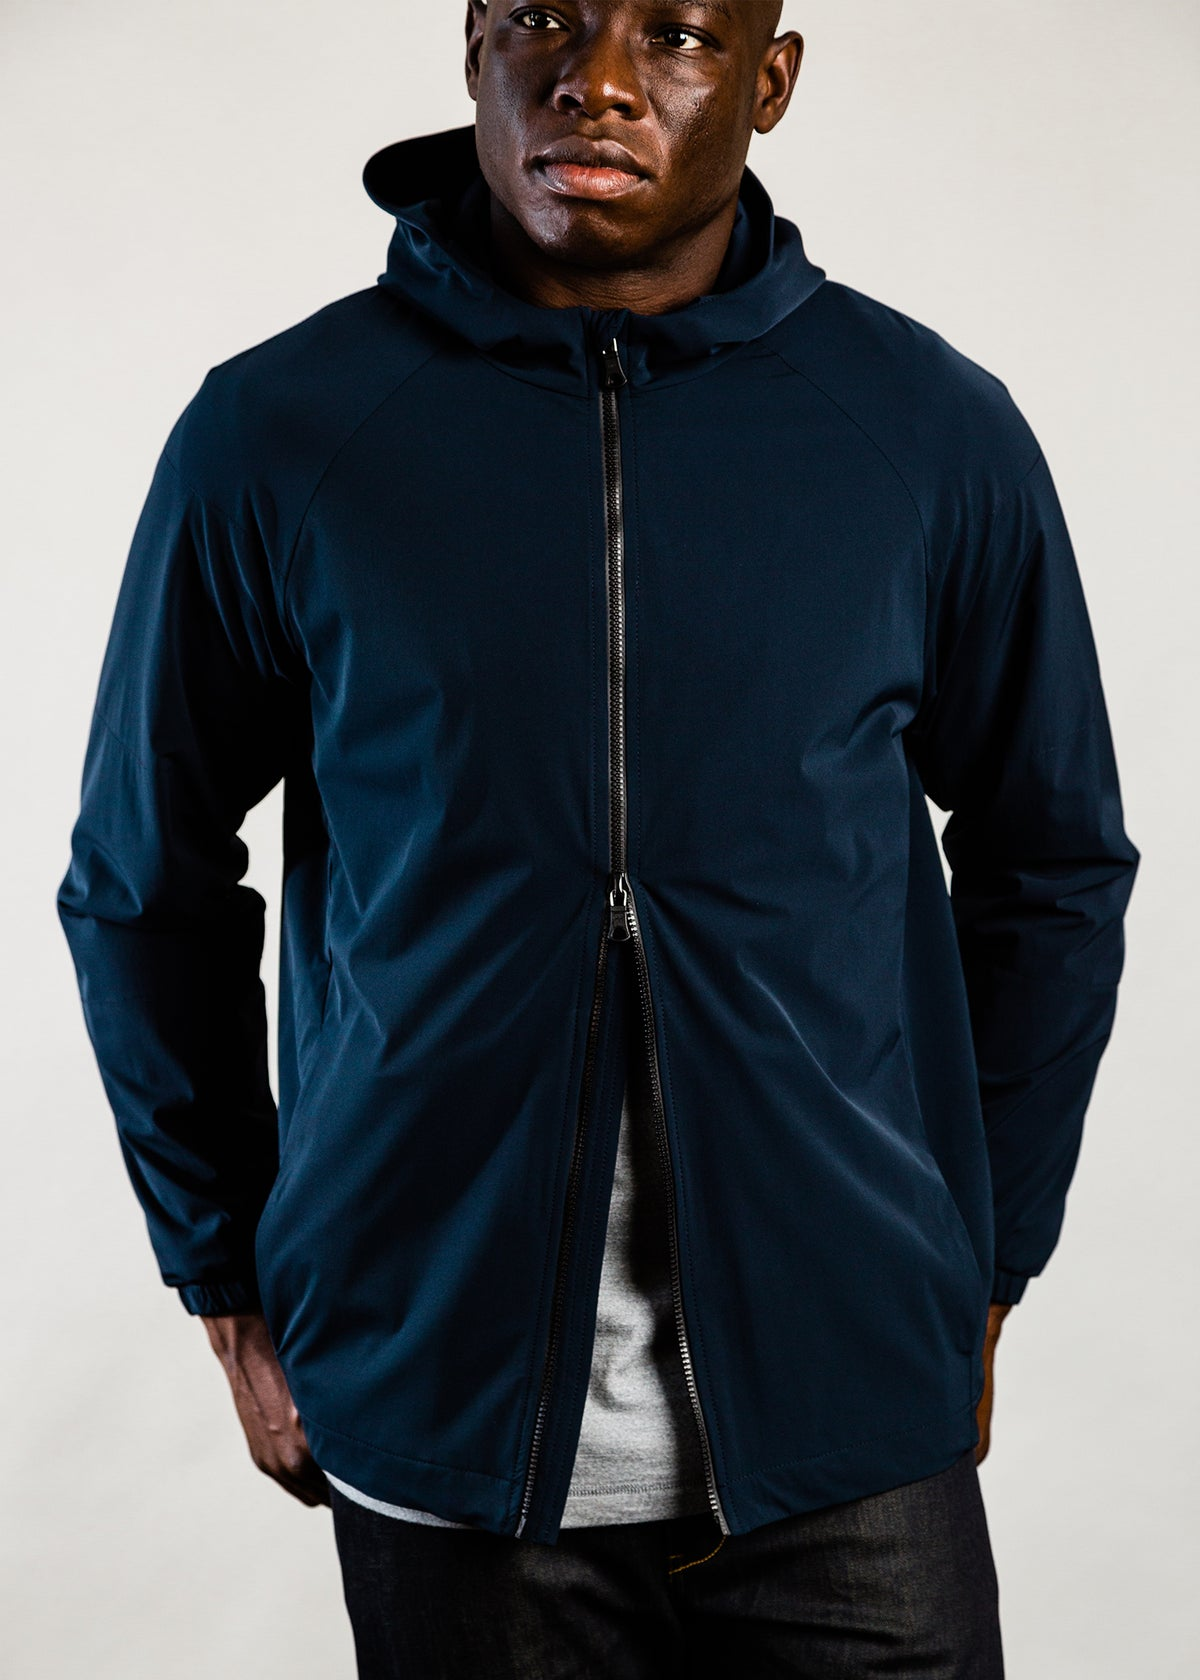 301 - QUILTED HOODED ZIP - NAVY - Wilson & Willy's - MPLS Neighbor Goods